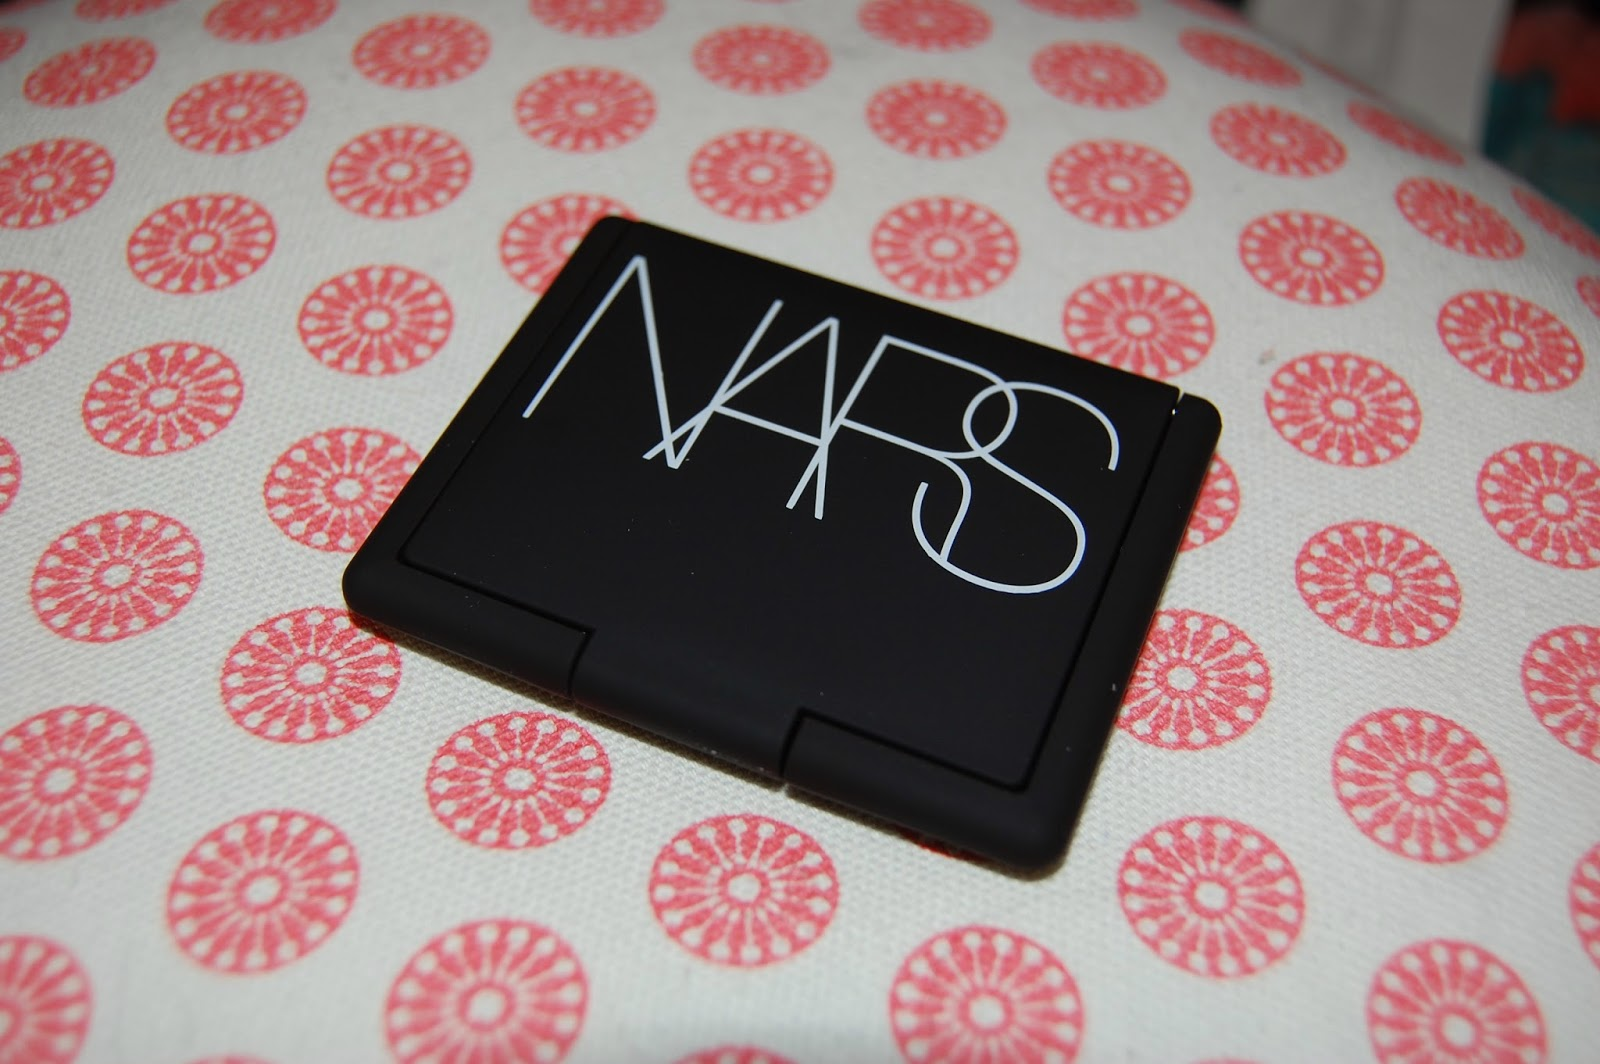 maybelline colour tattoo, eyeshadow, gel eyeshadow, pink, grey, metallics, make up, bbloggers, bblogger, beauty, maybelline, nars, albatross, highlight, contour